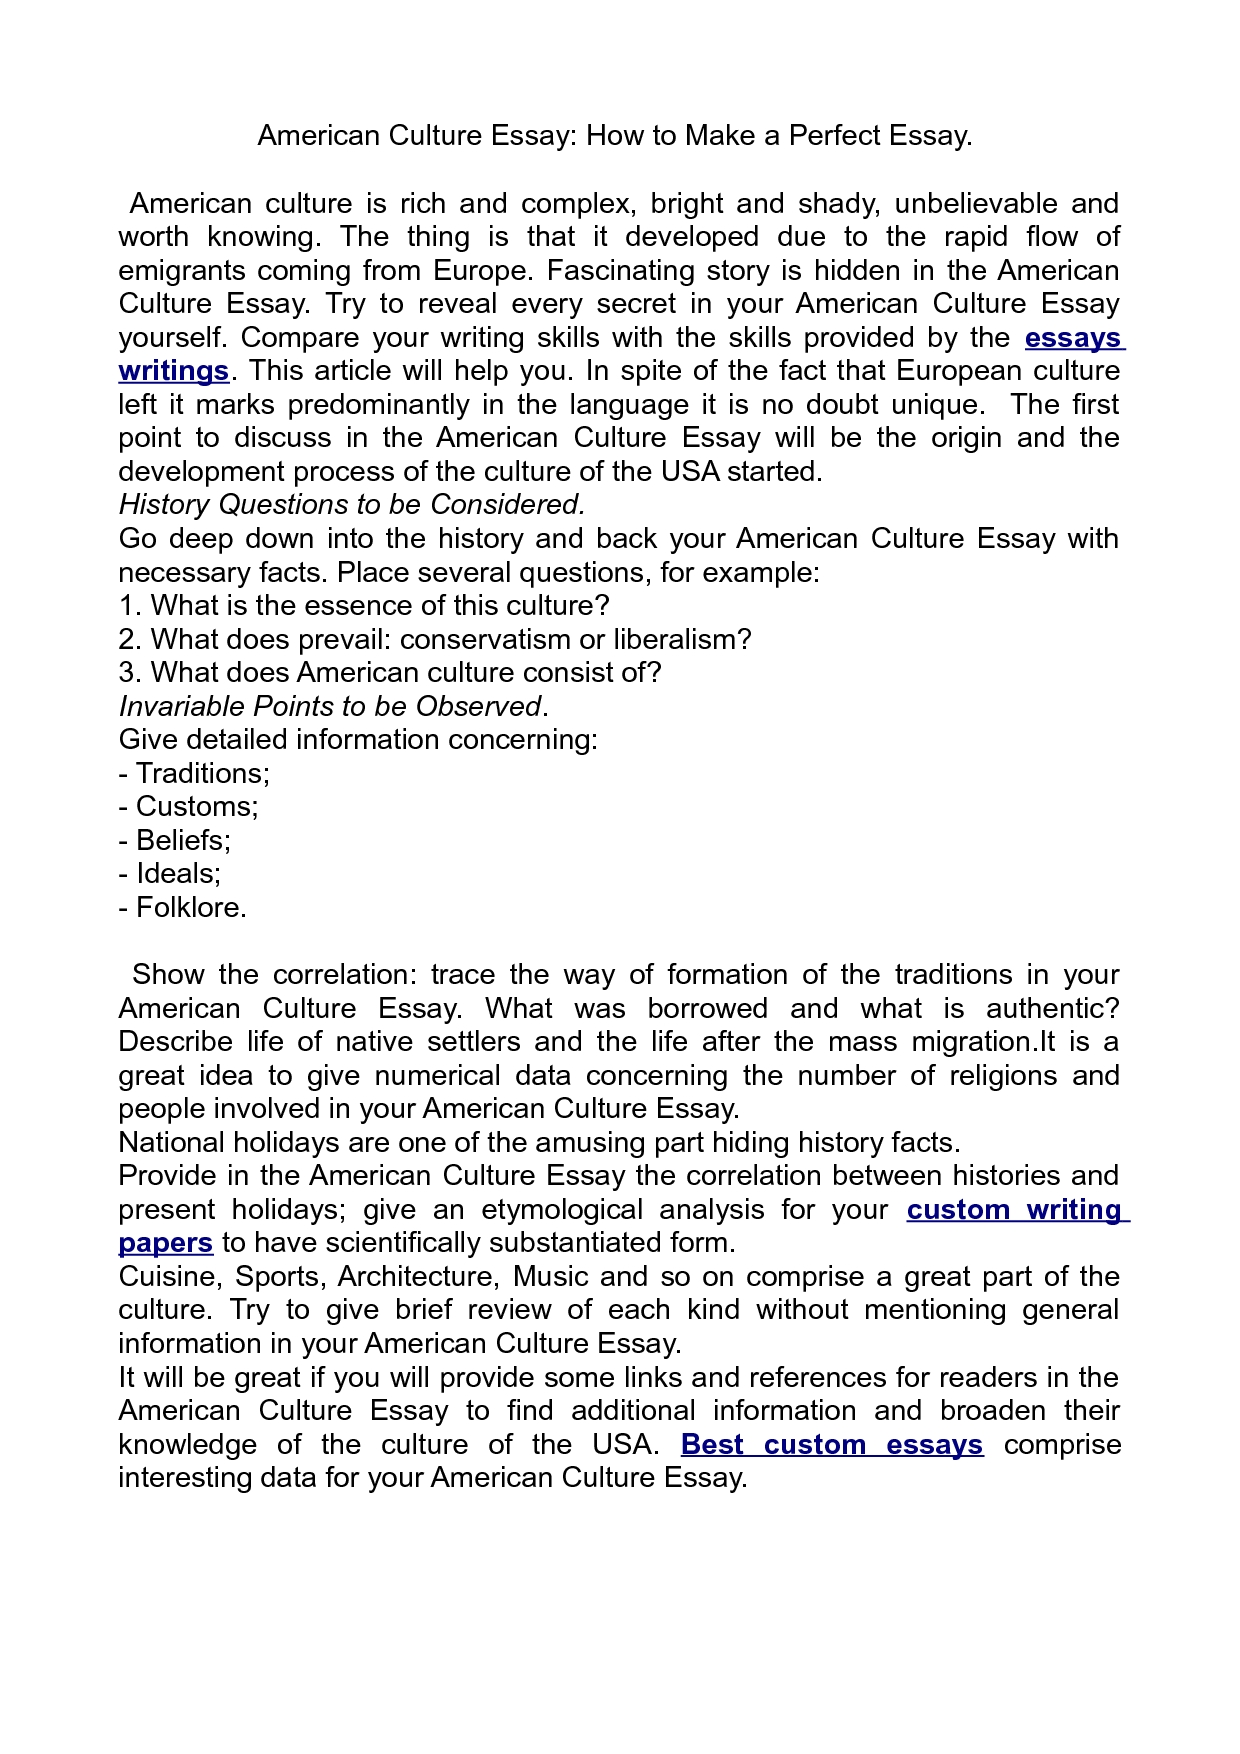 002 Essay Example What Is An American Stupendous Ideas Definition Crevecoeur Summary Full